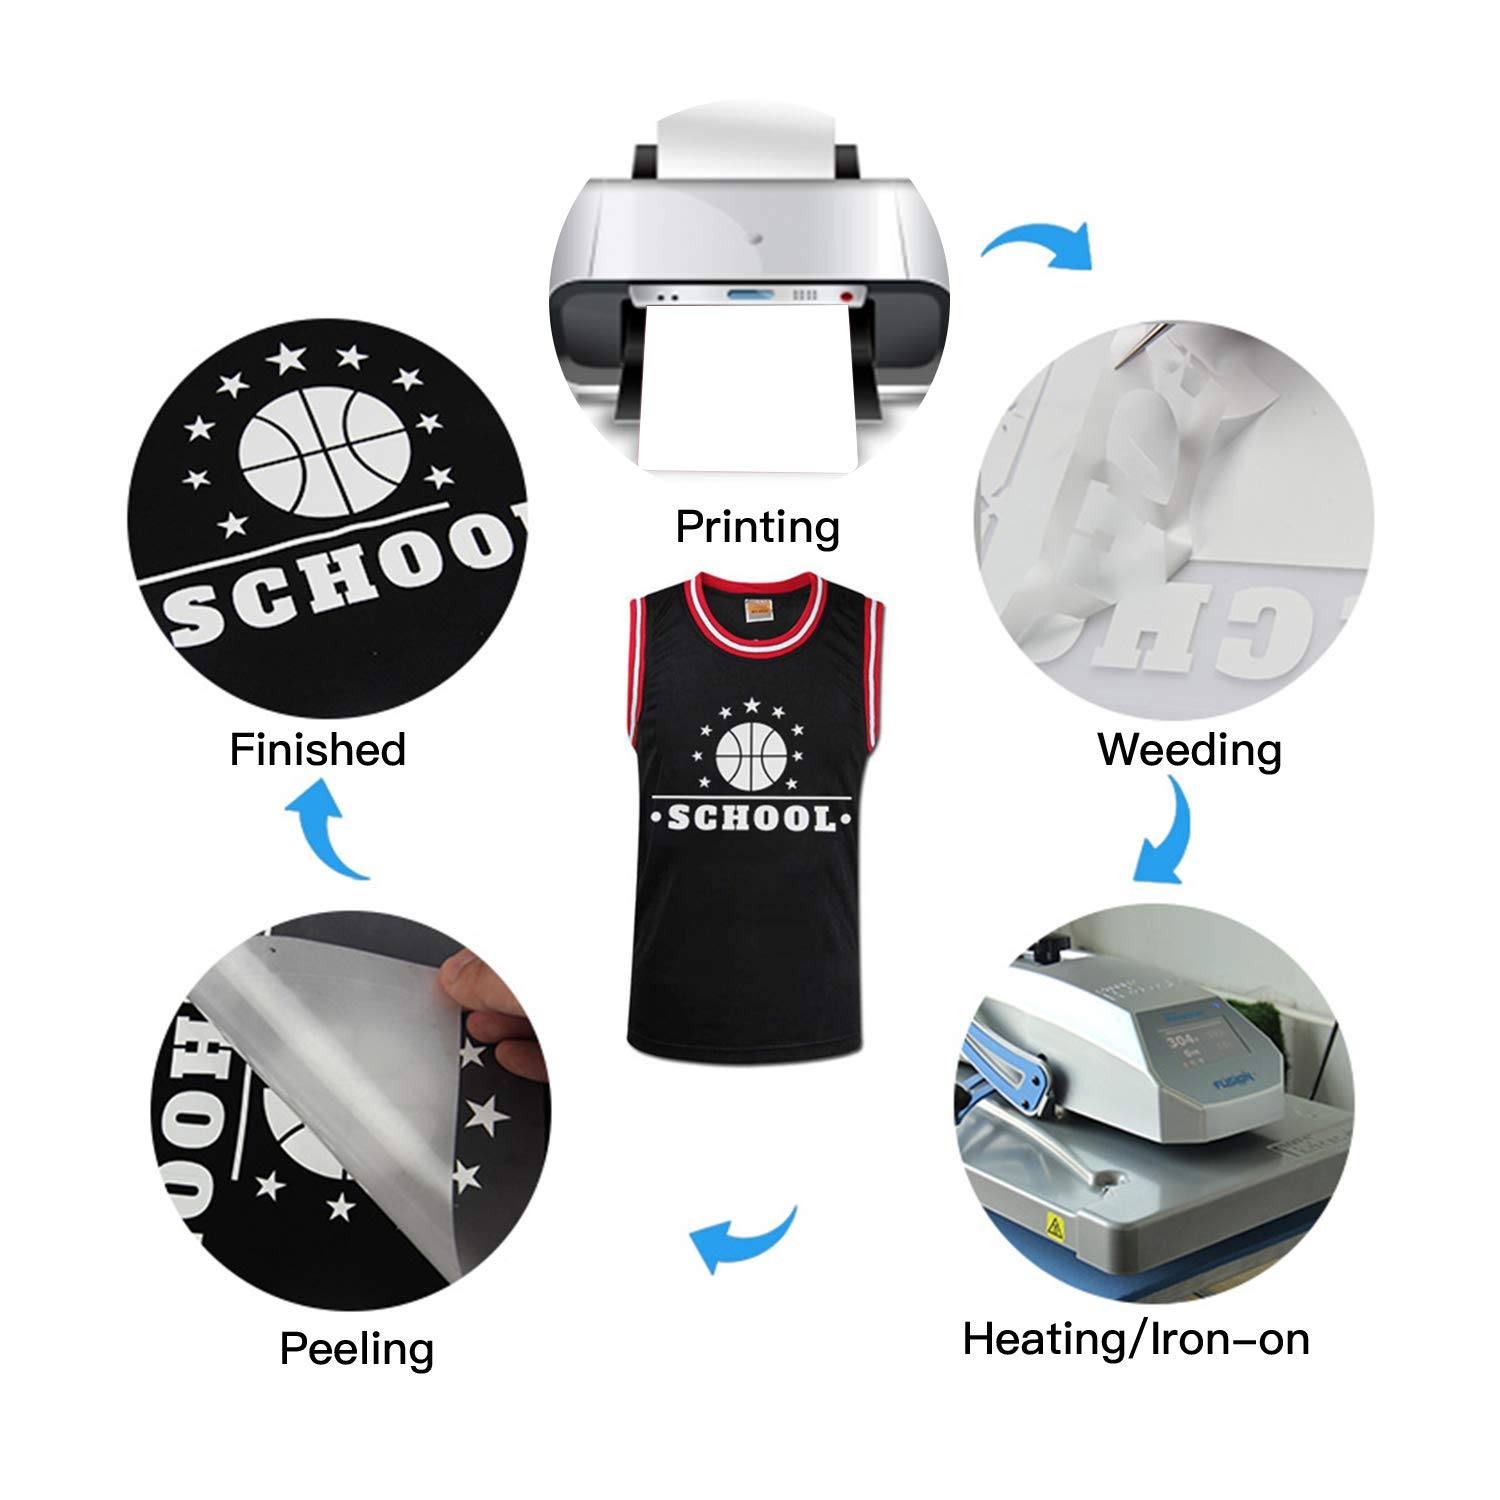 Iron On Vinyl for DIY T-Shirts Clothing Garment Easy to Weed by YRYM HT 28 Pack 12x10 Assorted Color Sheets for Cricut Silhouette Cameo or Other Heat Press Machine HTV Heat Transfer Vinyl Bundle